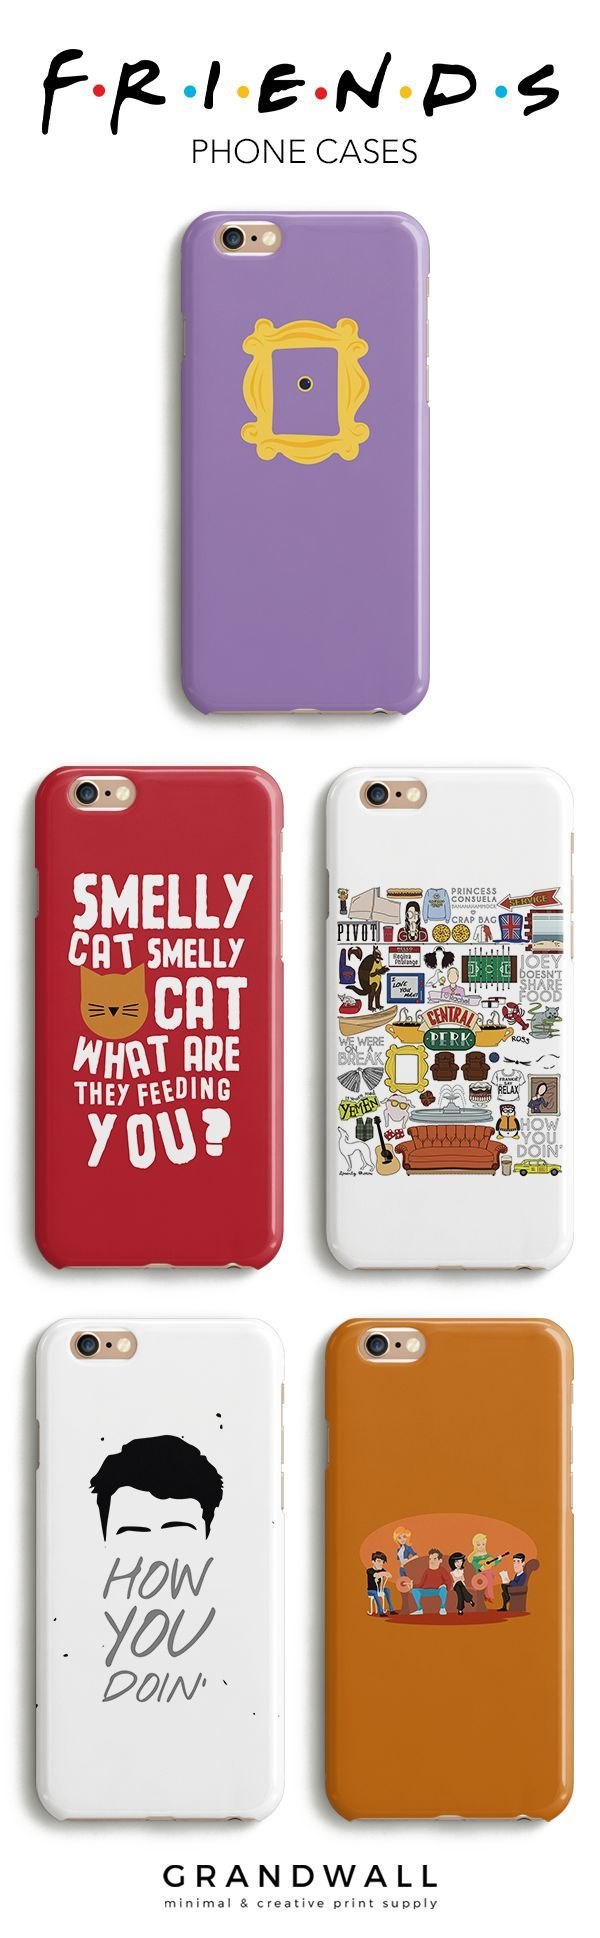 """Use Code """"PINTEREST"""" for 10% off these Friends tv phone cases for the ultimate fans of the show available in all models for the iPhone as well as options for Samsung devices. Available here: http://grandwall.co/collections/friends-collection"""